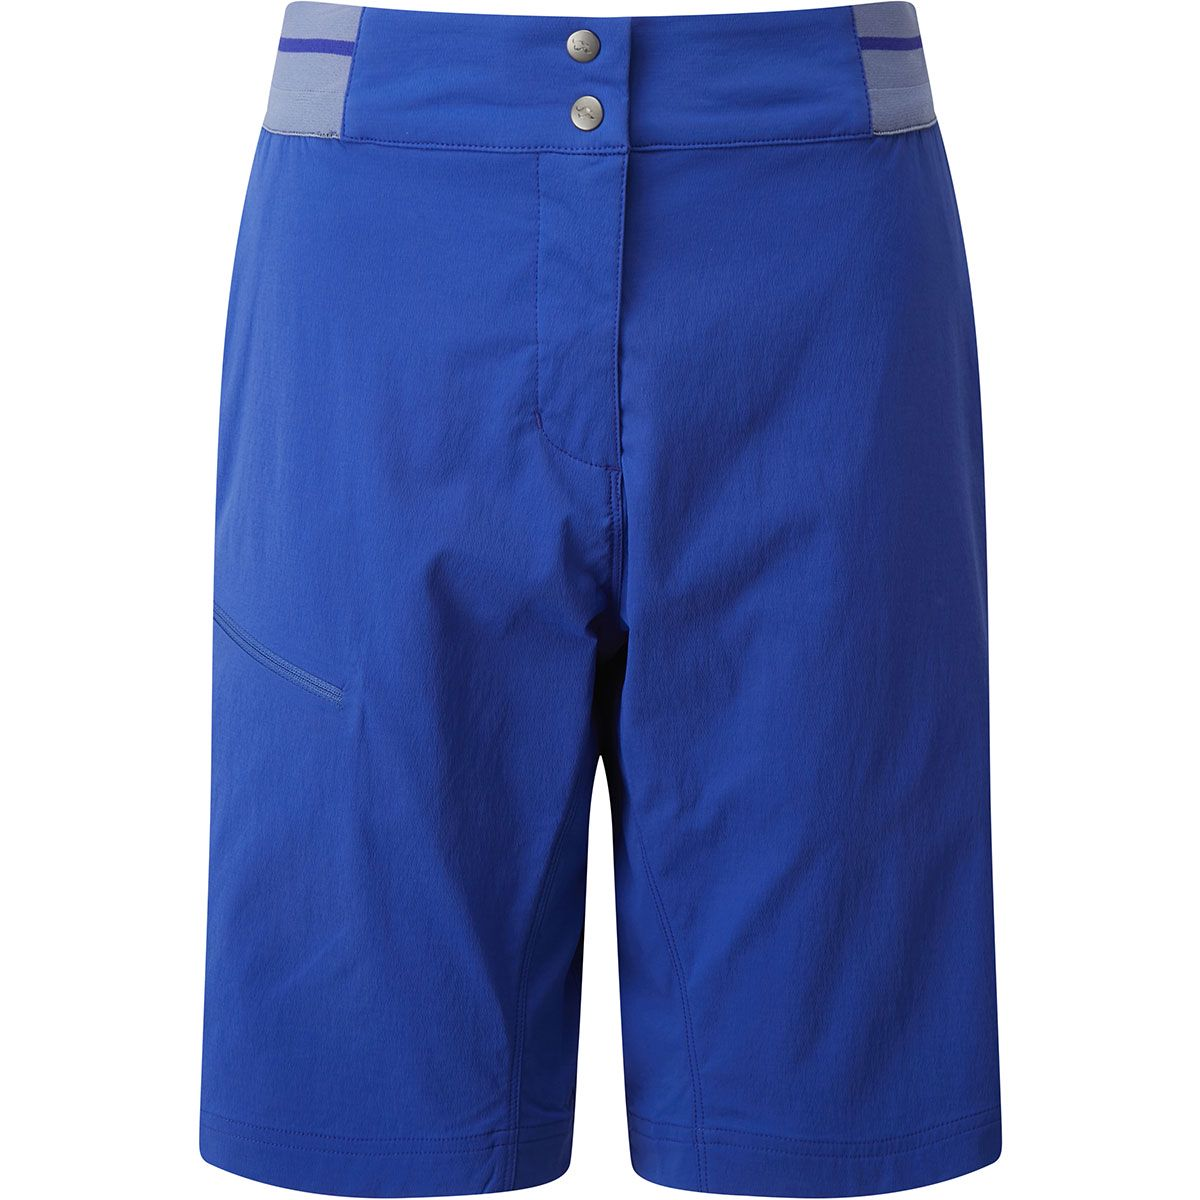 Rab Damen Torque Light Shorts (Größe S, Blau)